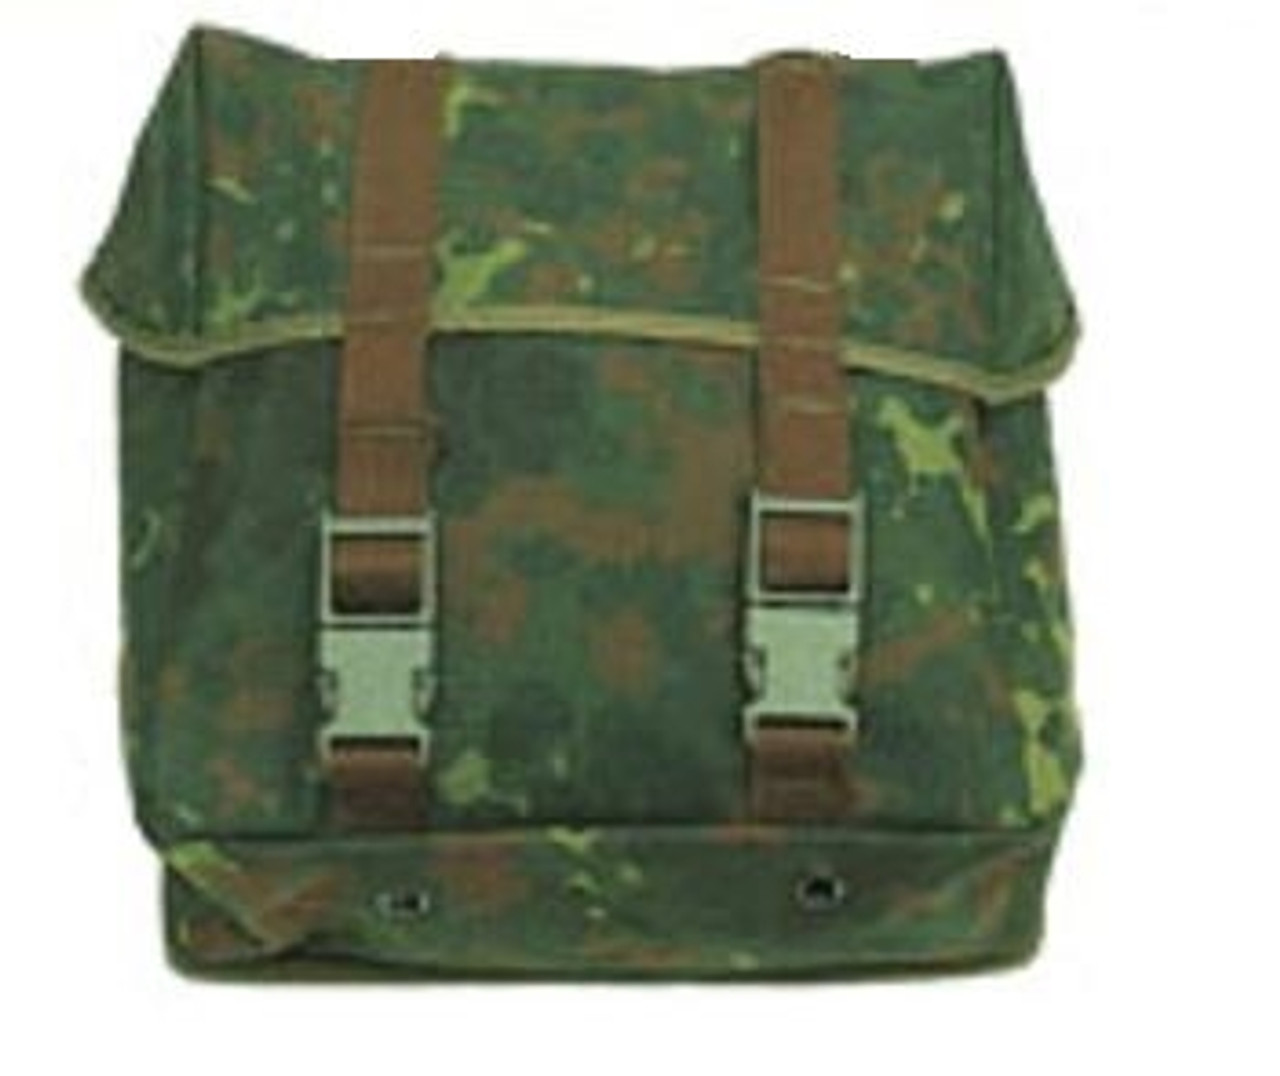 Bundeswehr Flectar Combat Pack - New from Hessen Antique